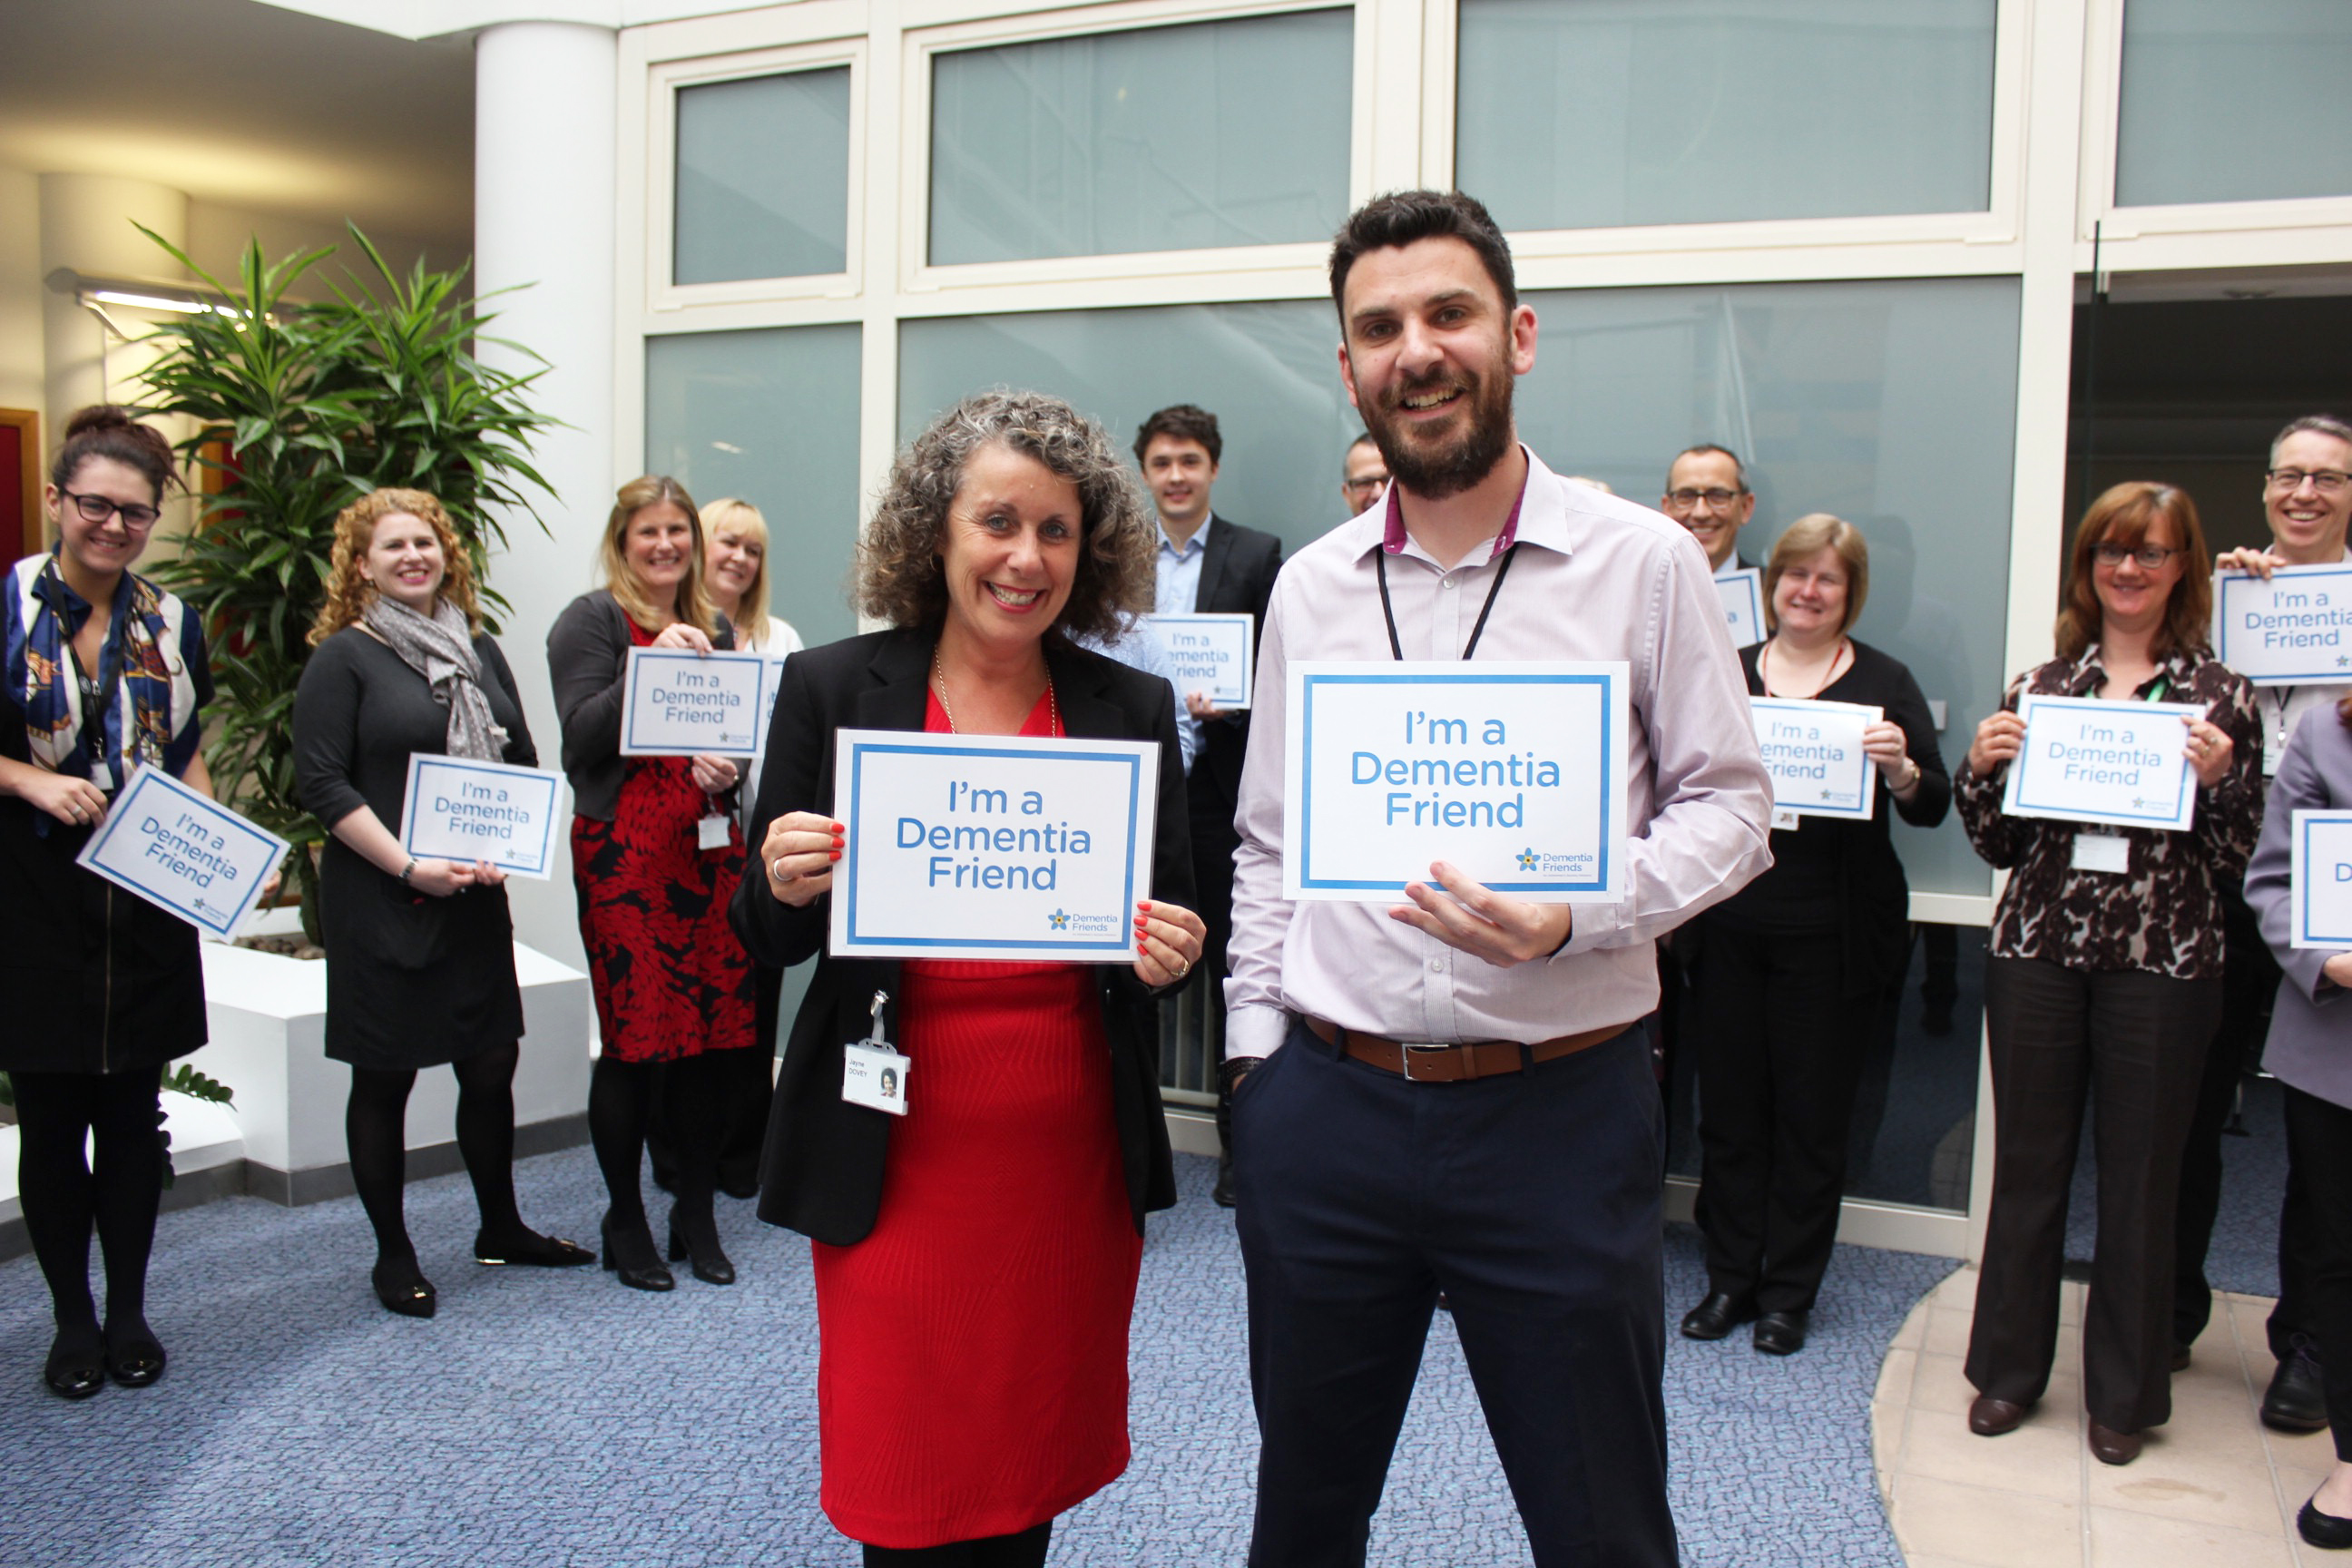 Staff from Phoenix Group showing support for Dementia Friends